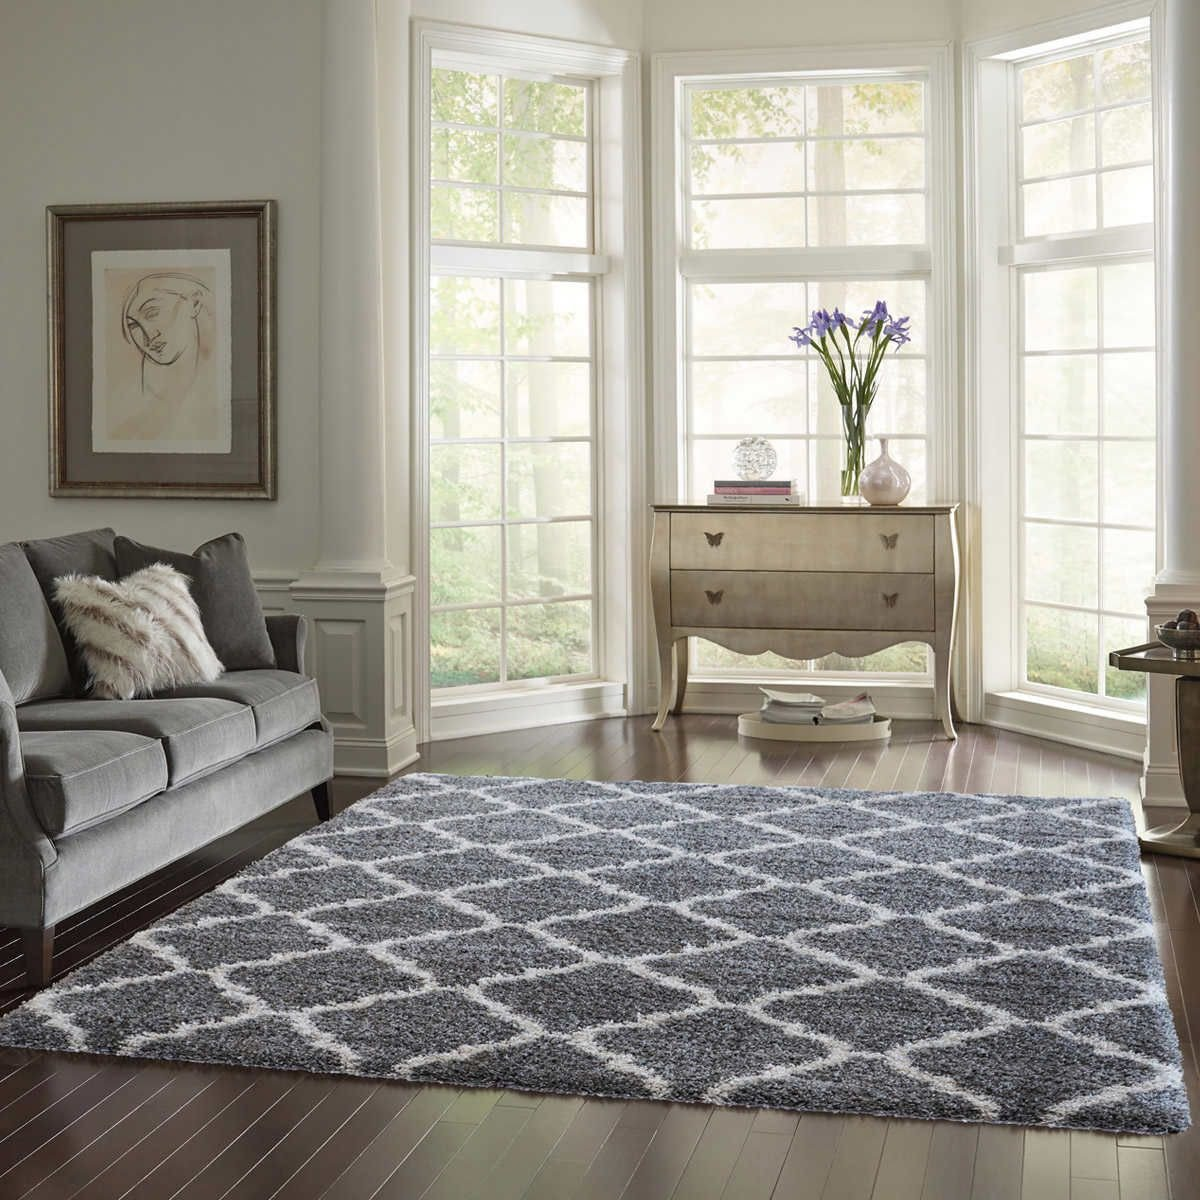 Furry Rugs for Bedroom New Thomasville Marketplace Luxury Trellis Shag Rugs